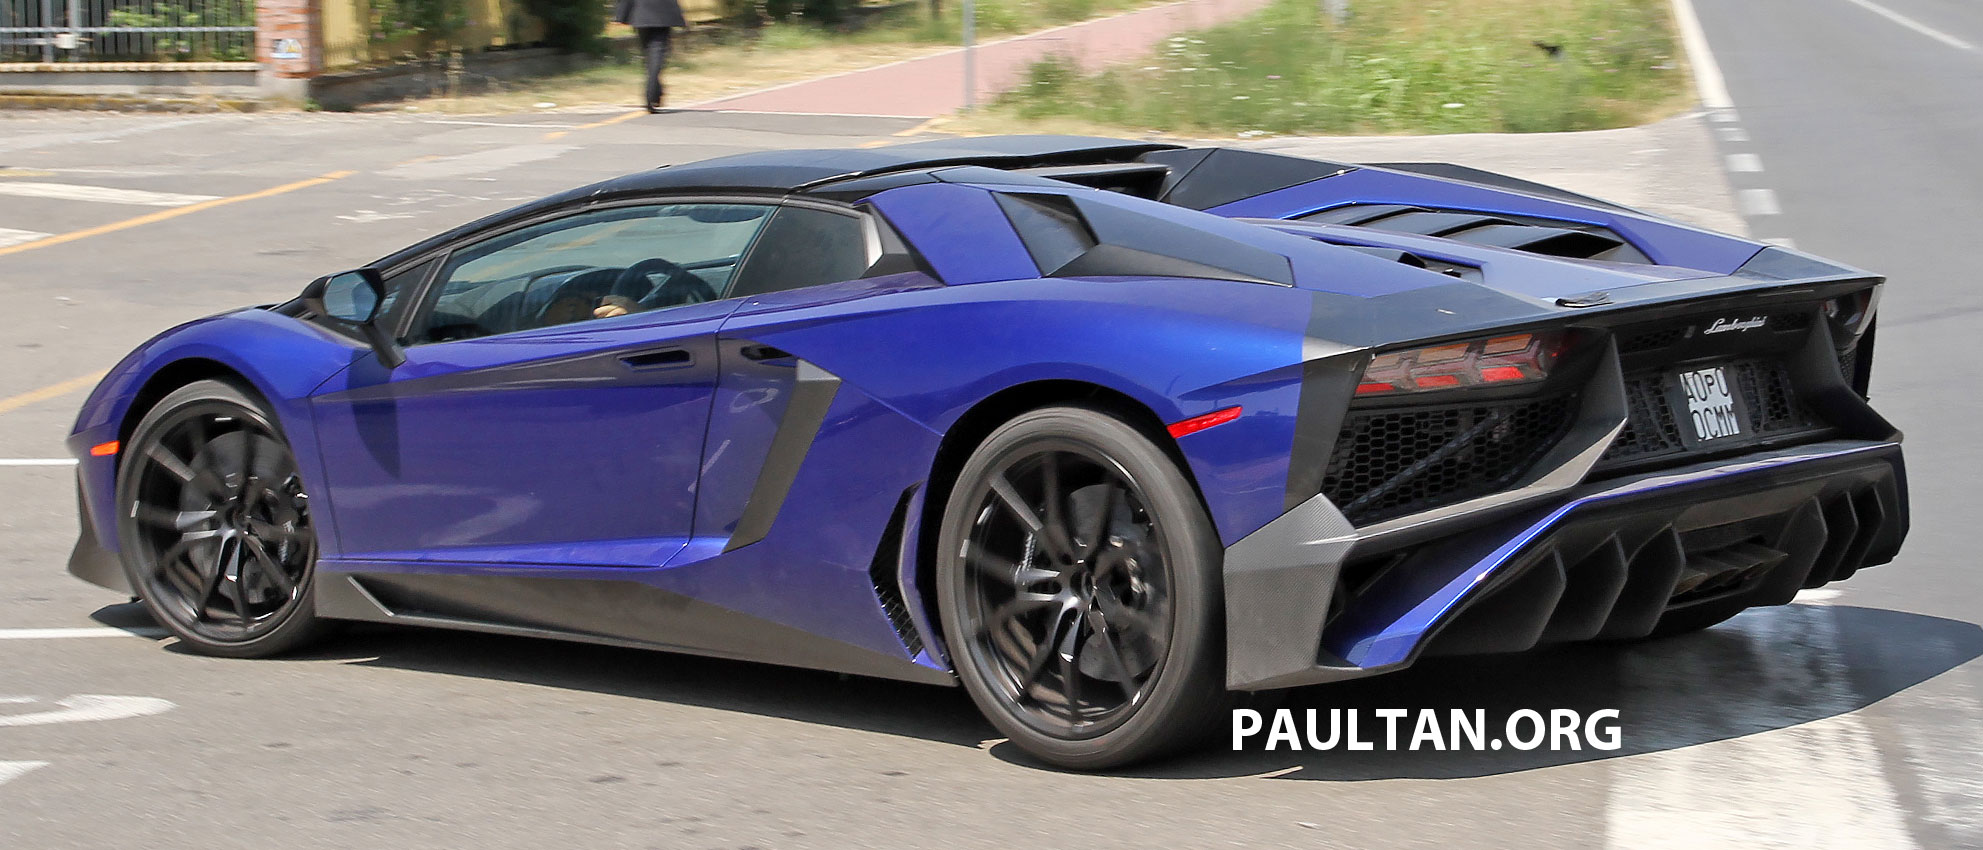 Spied Lamborghini Aventador Lp750 4 Sv Roadster Captured HD Wallpapers Download free images and photos [musssic.tk]